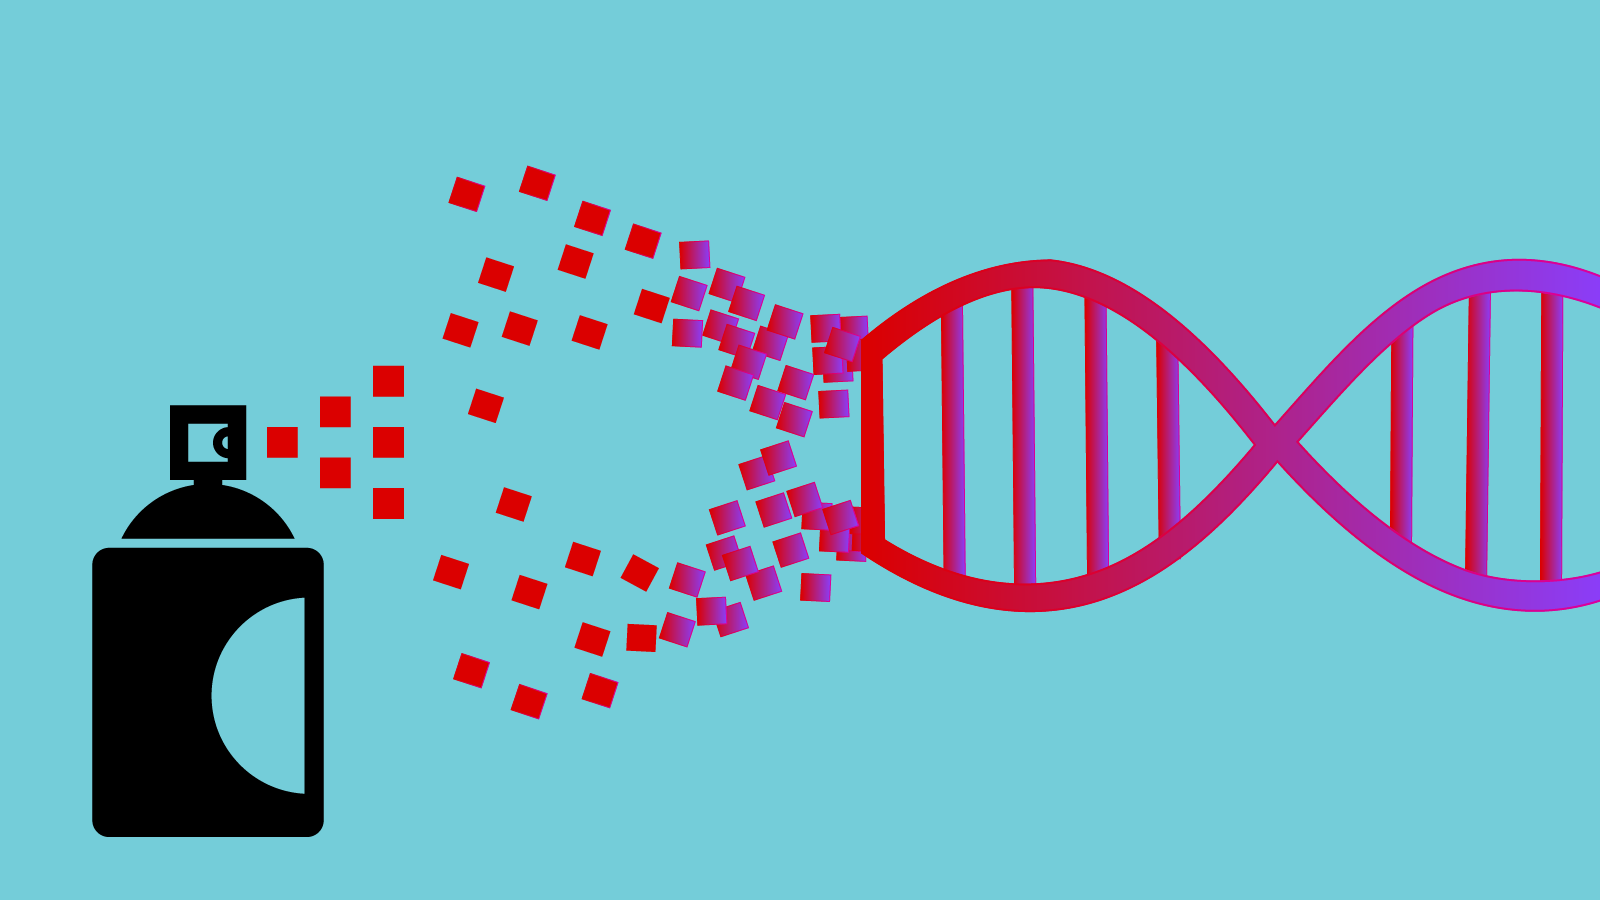 technologyreview.com - Antonio Regalado - Turns out CRISPR editing can also vandalize genomes